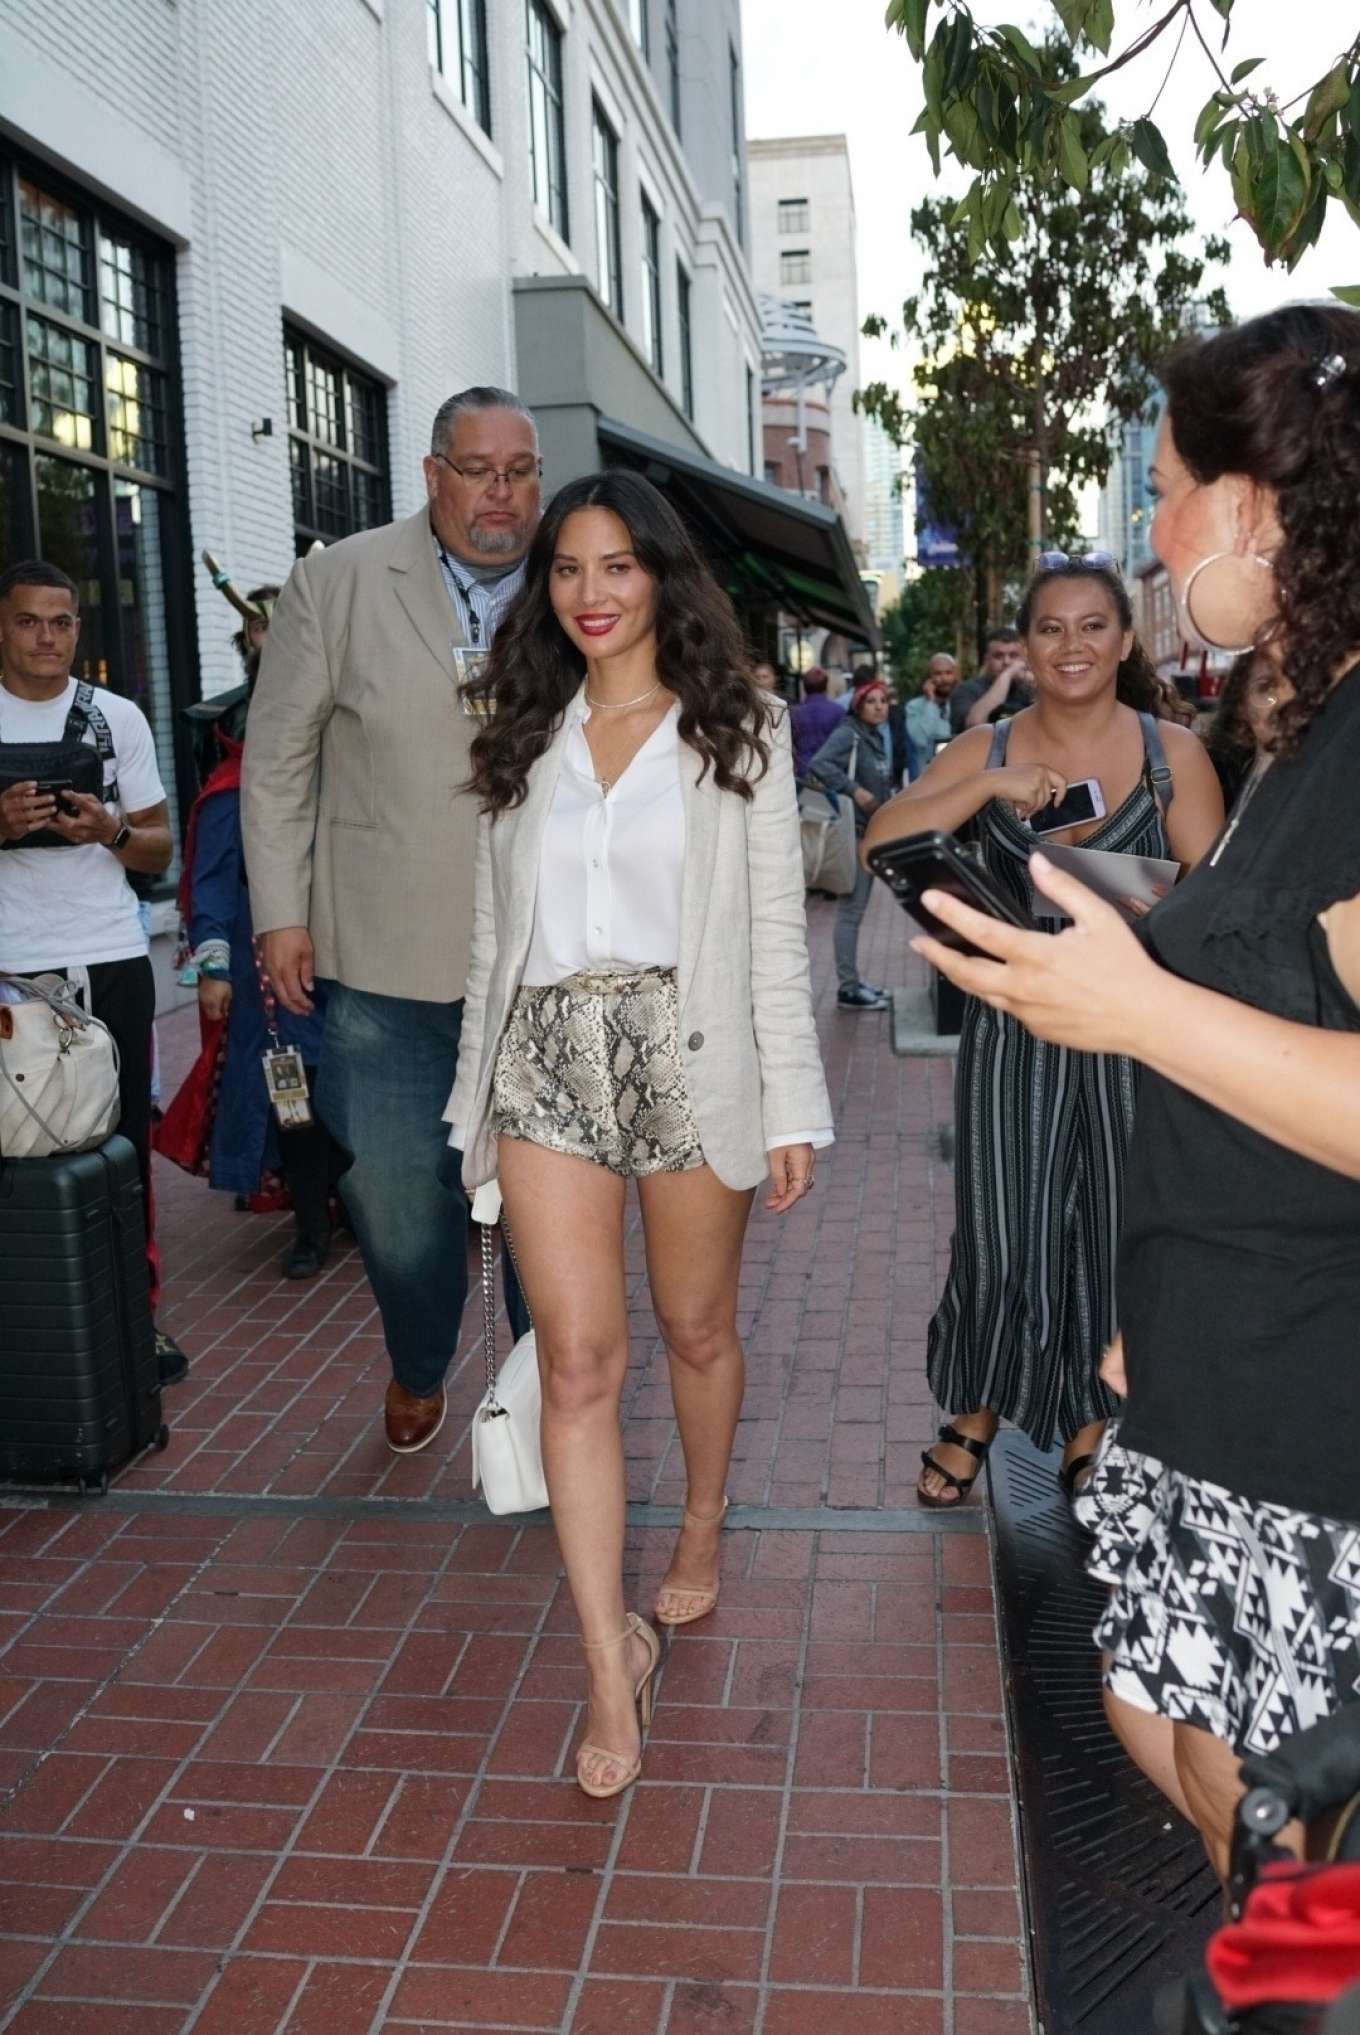 Olivia Munn in Shorts - Out at Comic Con San Diego 2019